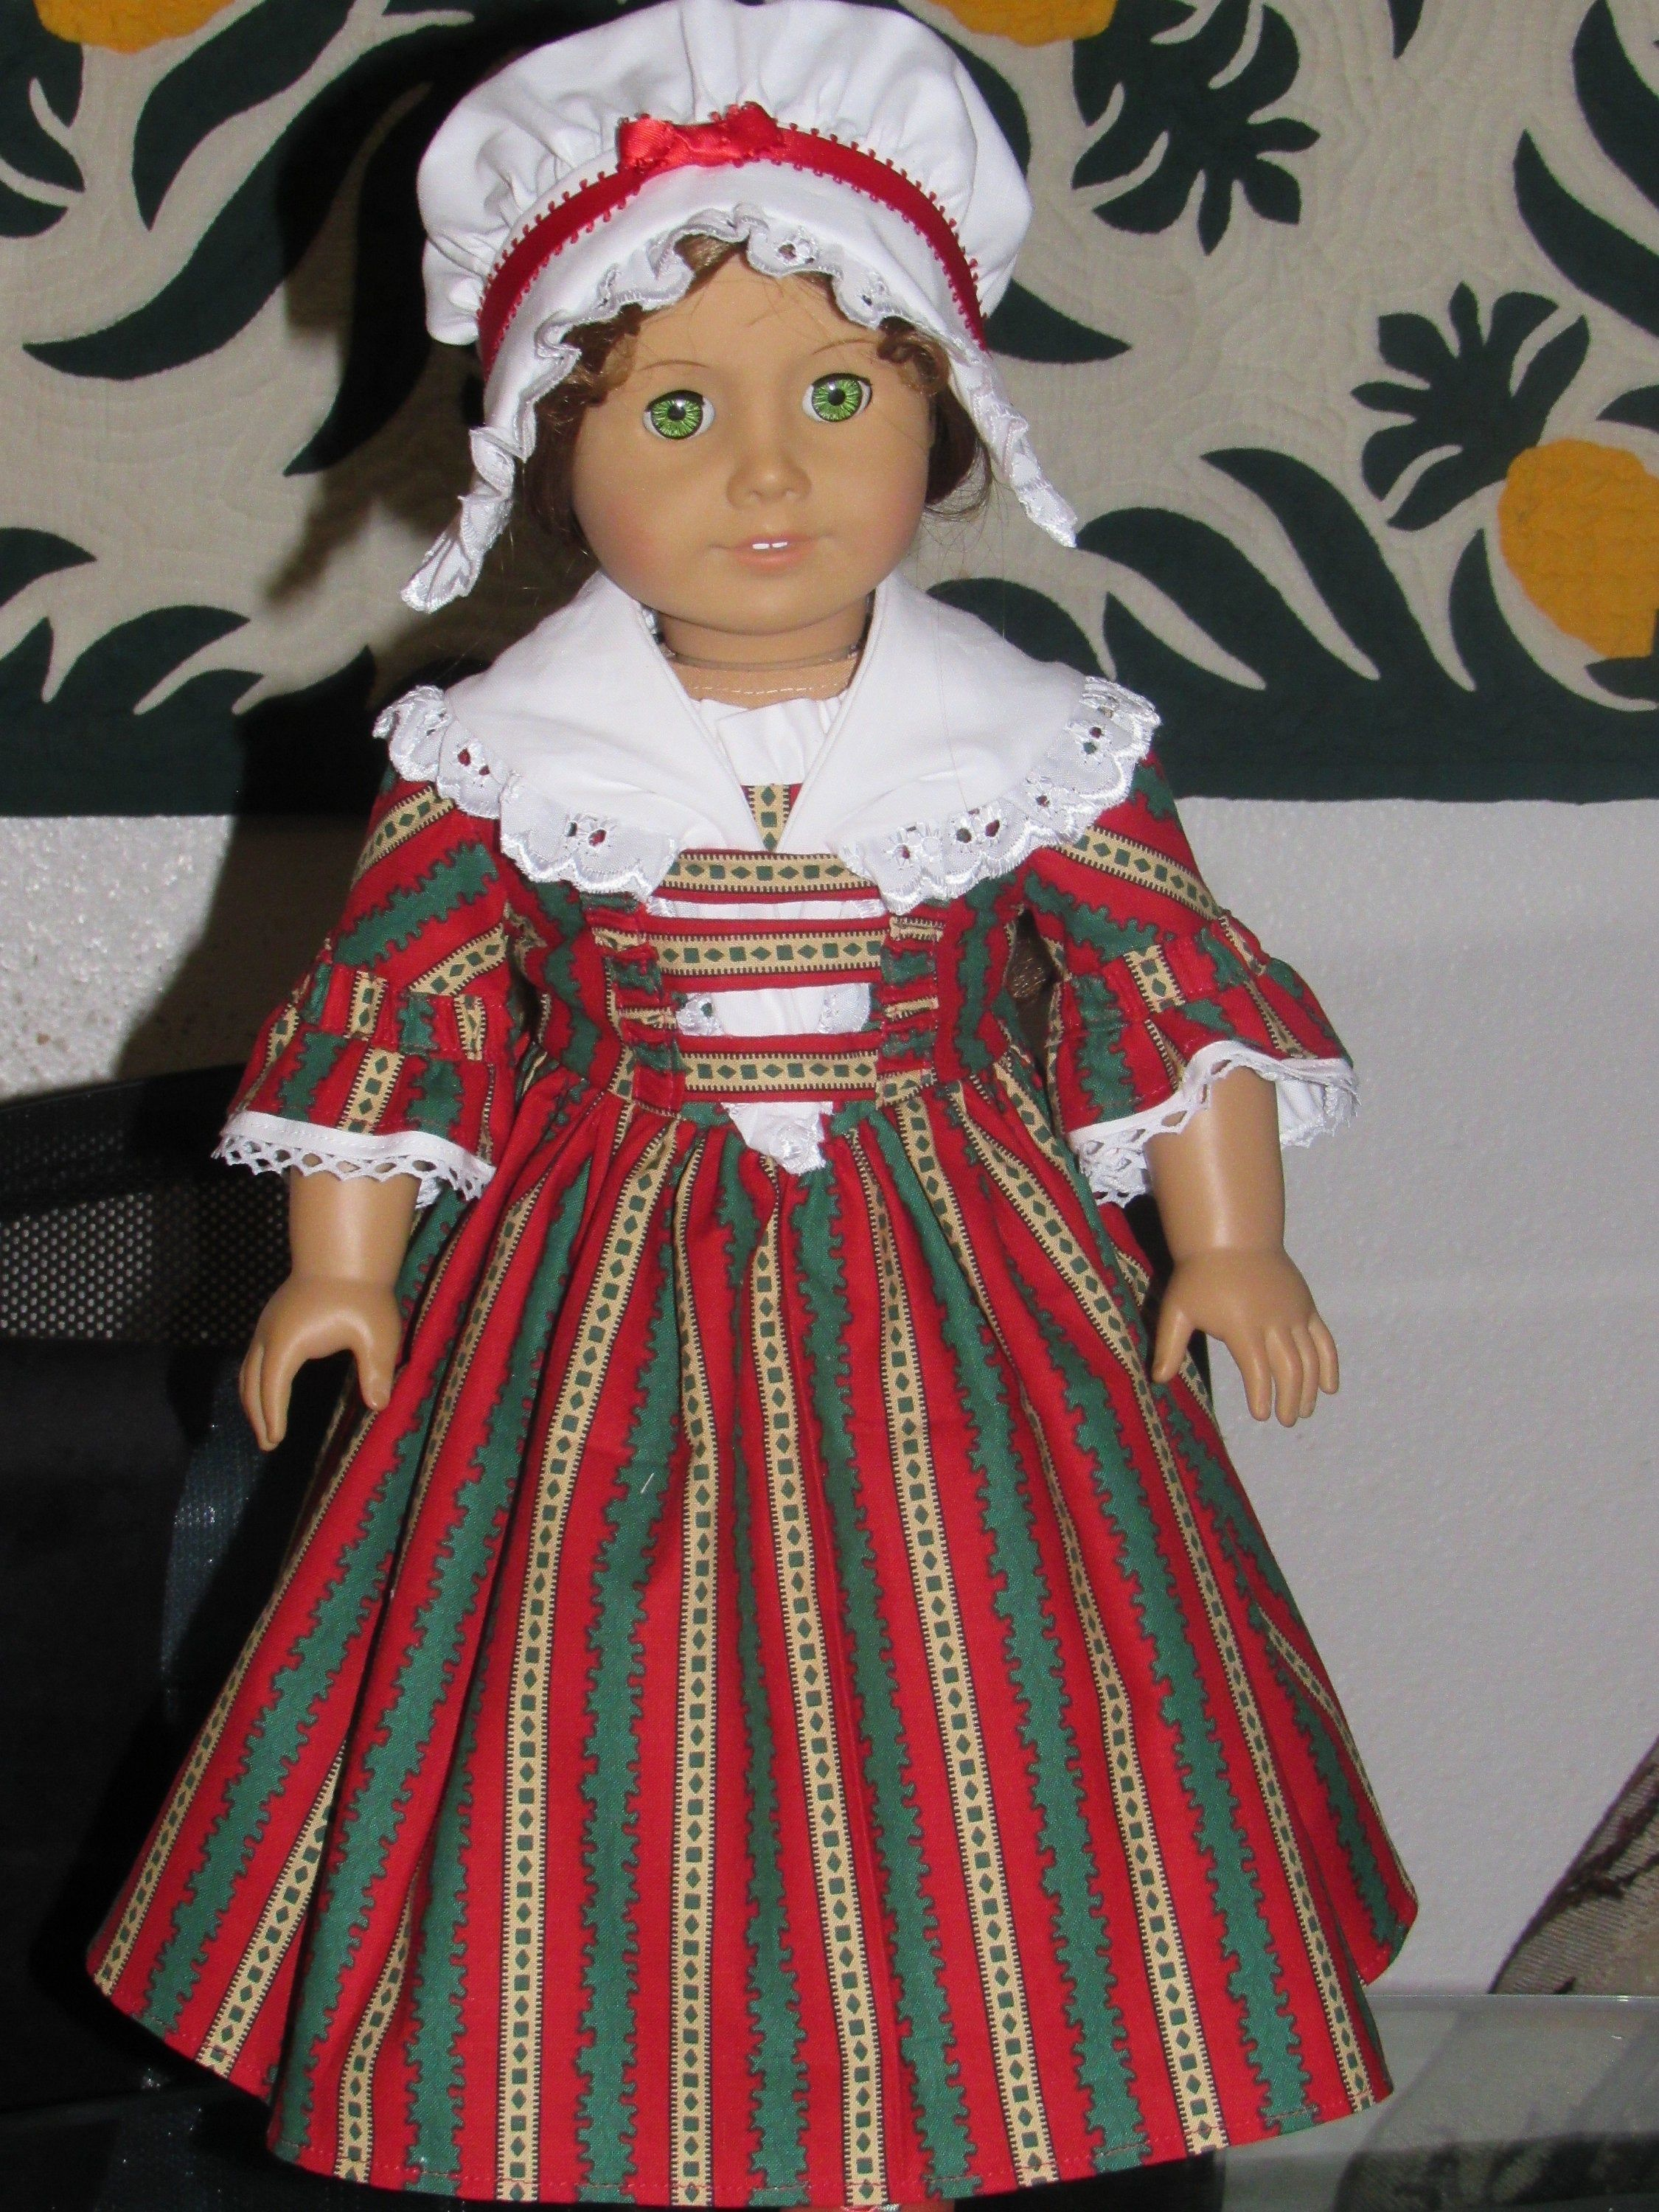 1770s 3 Pc Holiday Colonial Dress Gown Shawl Round Eared Cap for American Girl Felicity Elizabeth 18 inch doll